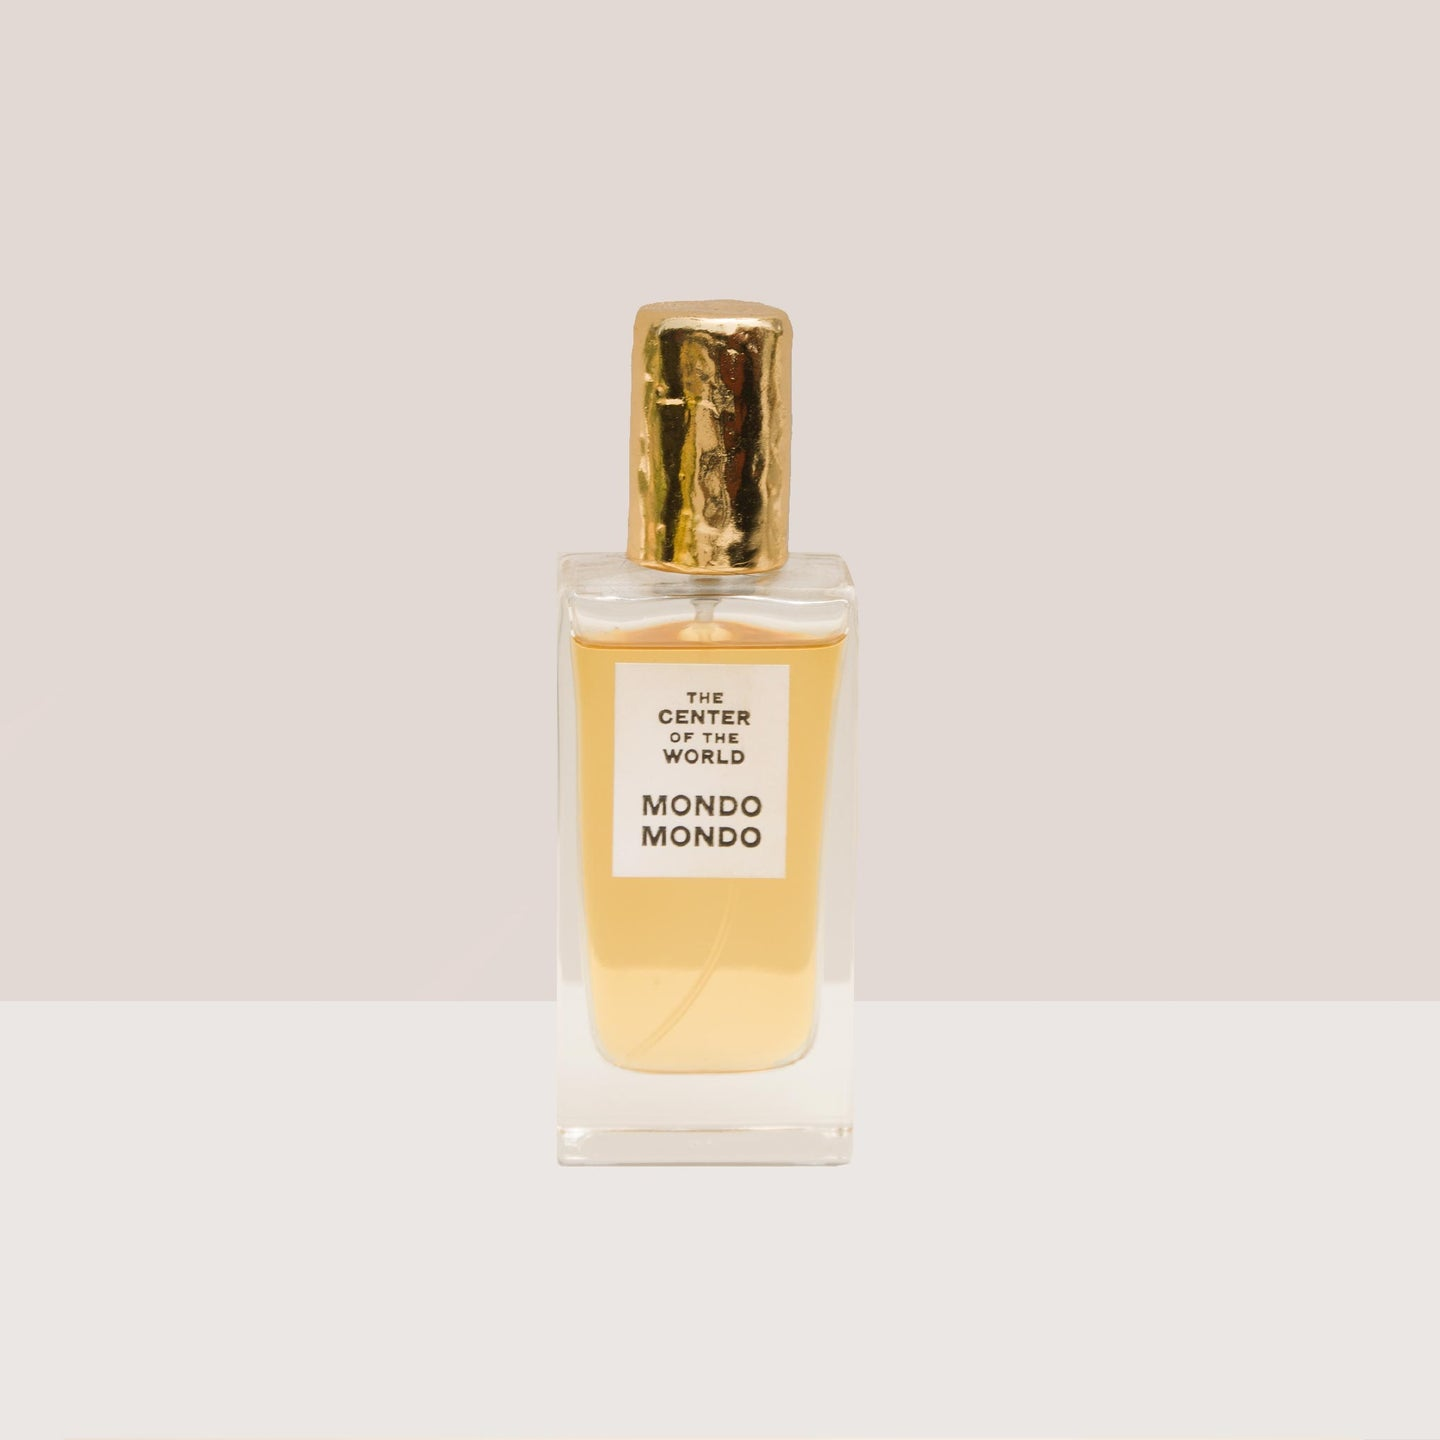 Mondo Mondo - The Center of the World Eau de Parfum, available at LCD.